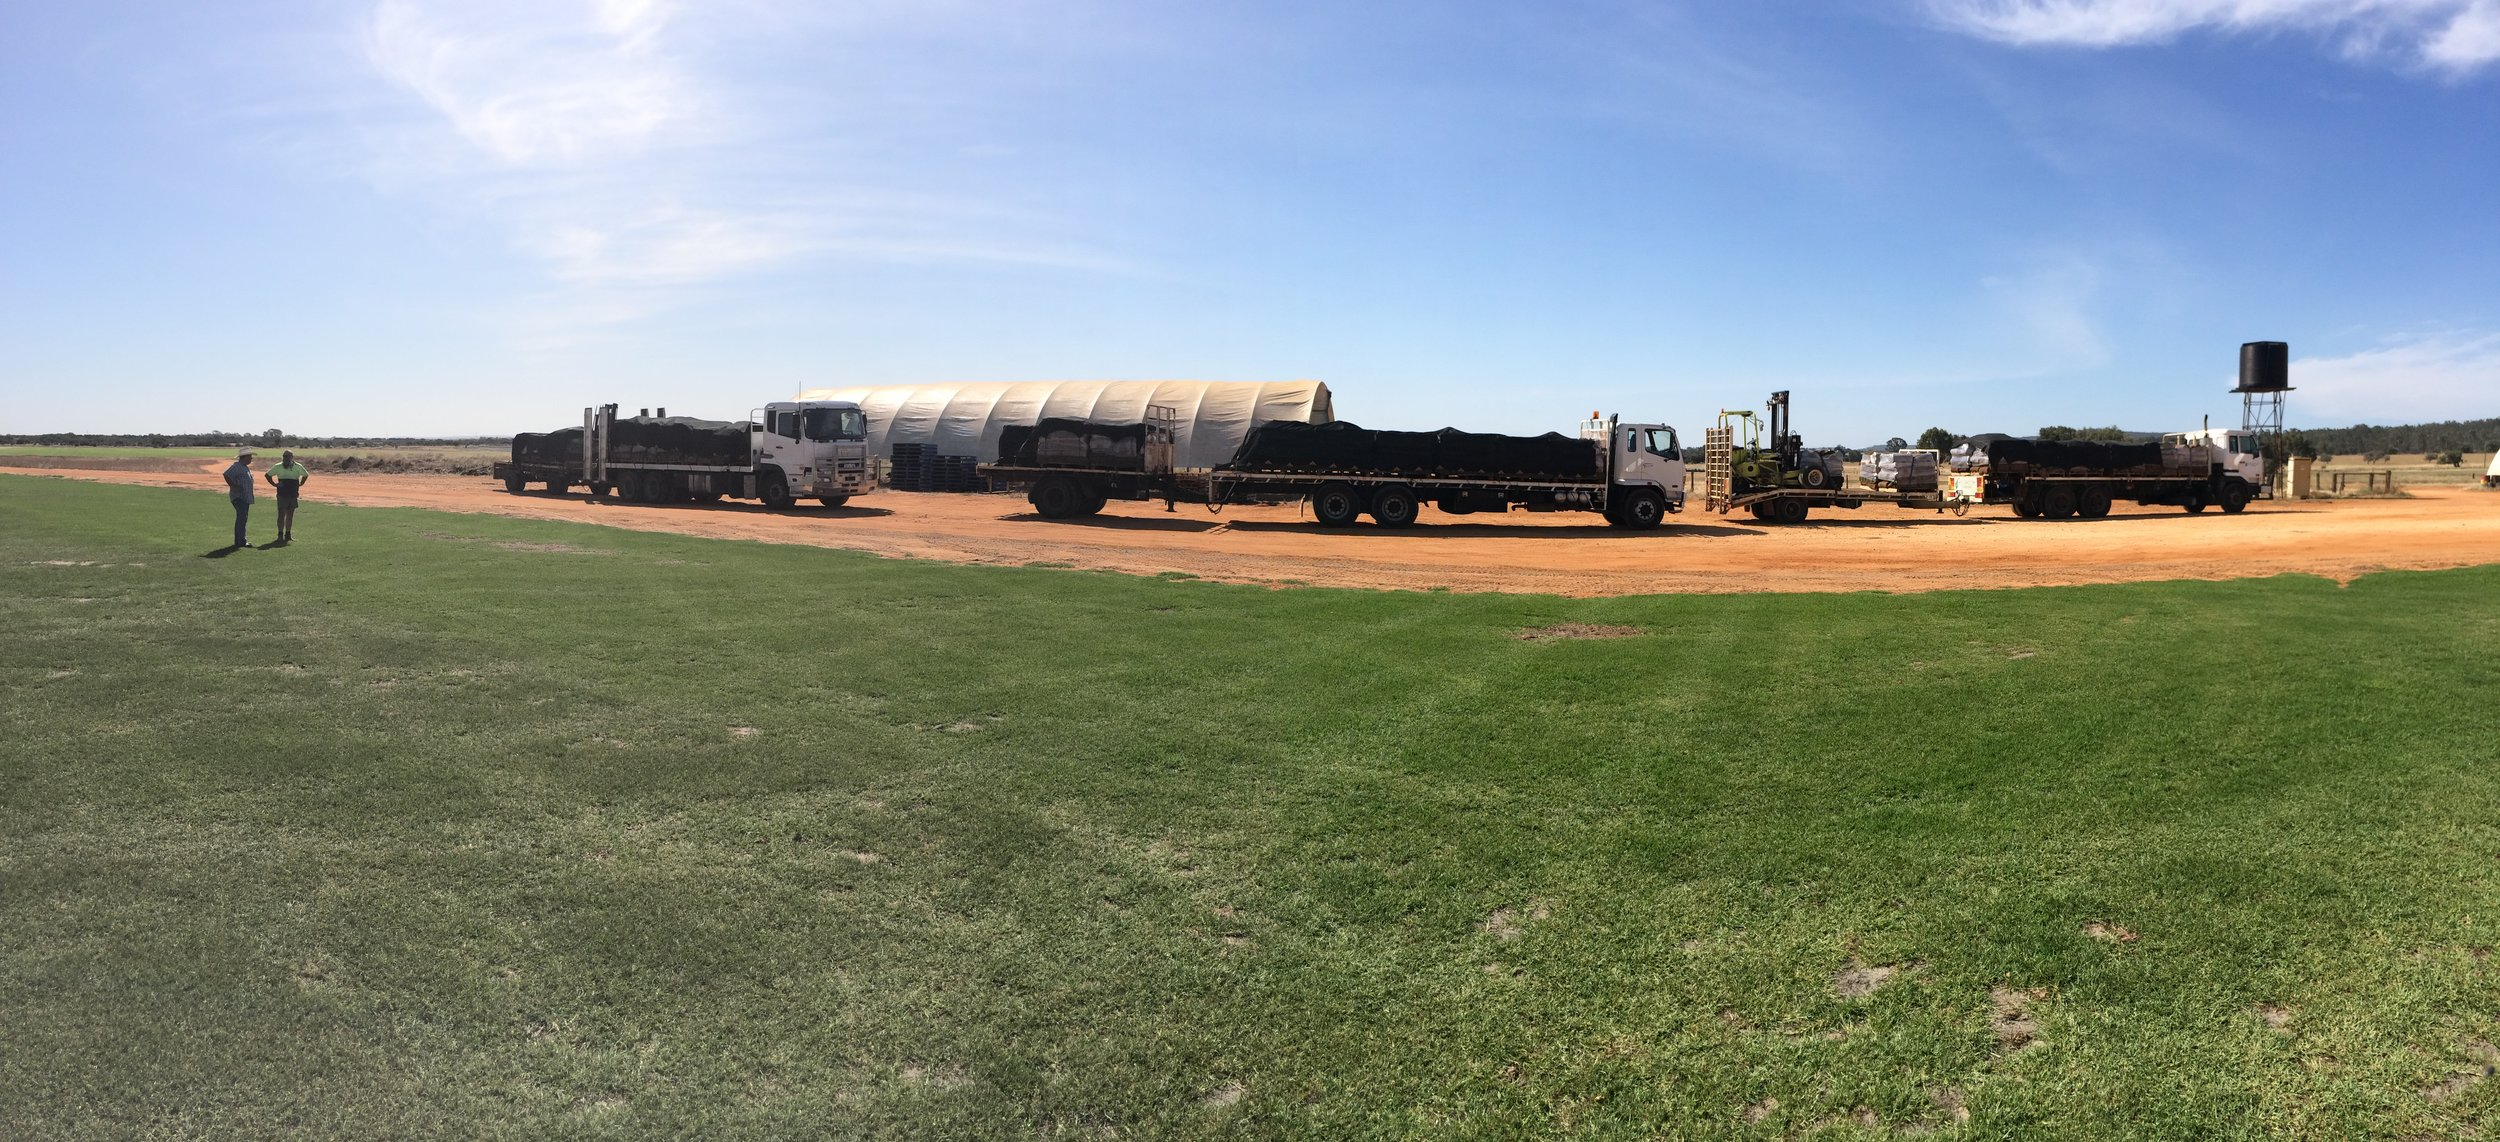 Turf trucks loaded and ready to deliver